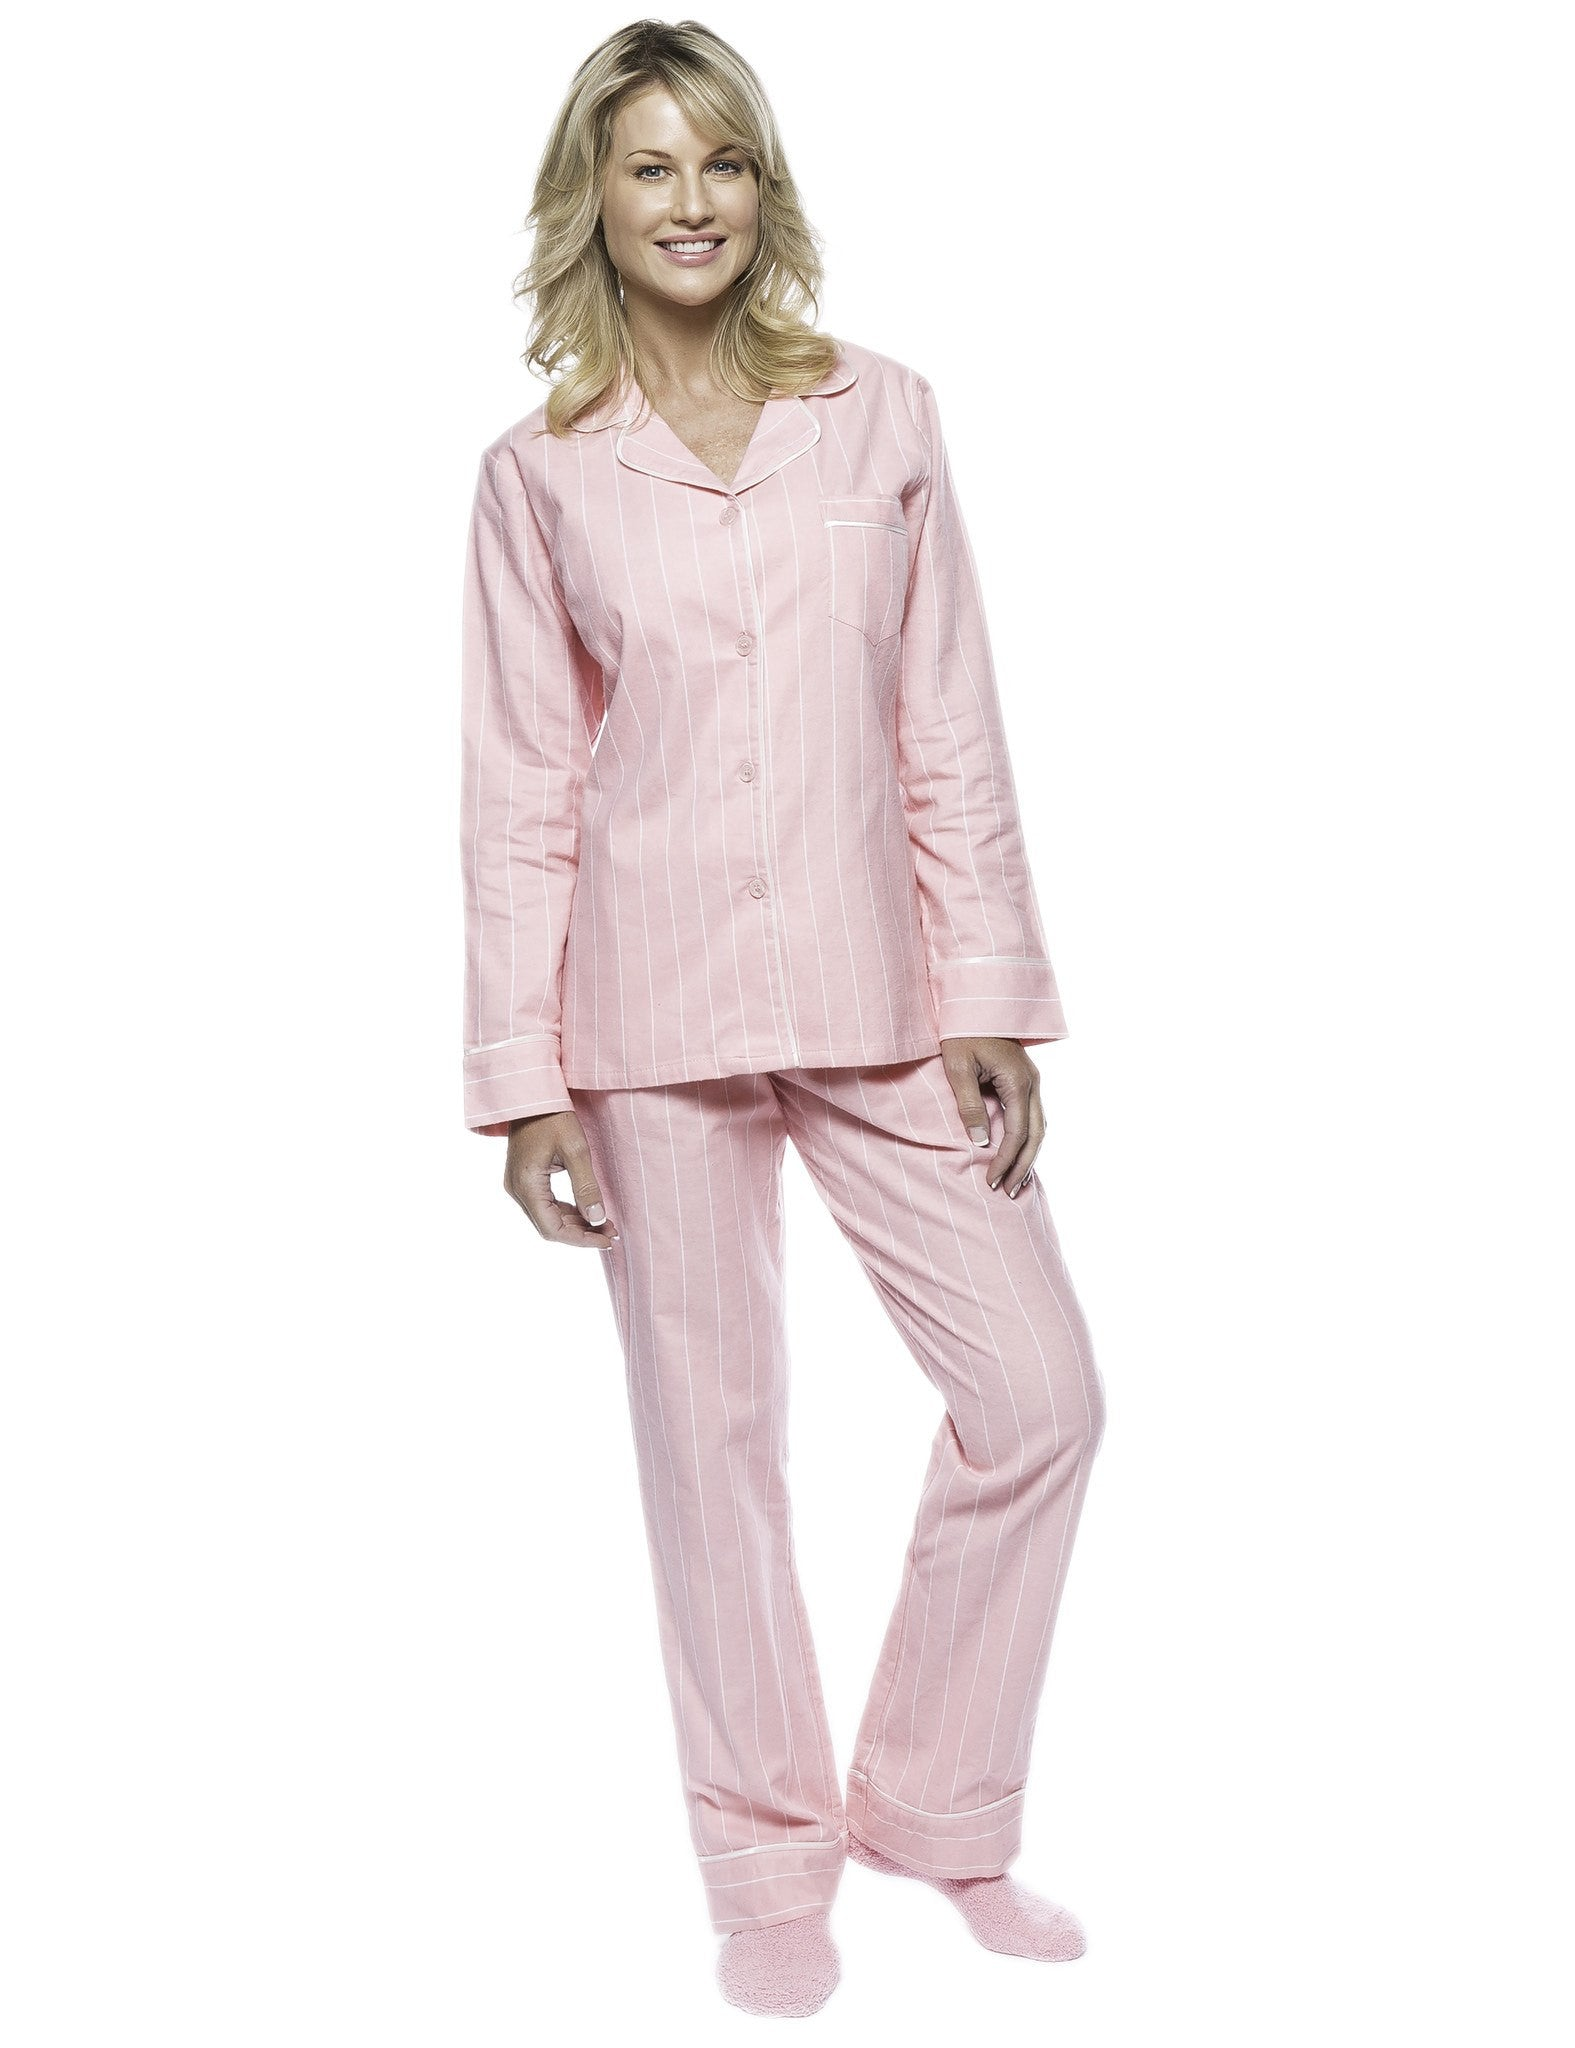 86e5ba7807c Boxed Pacakged Womens Premium Cotton Flannel Pajama Sleepwear Set with Free  Plush Socks - Stripes Pink